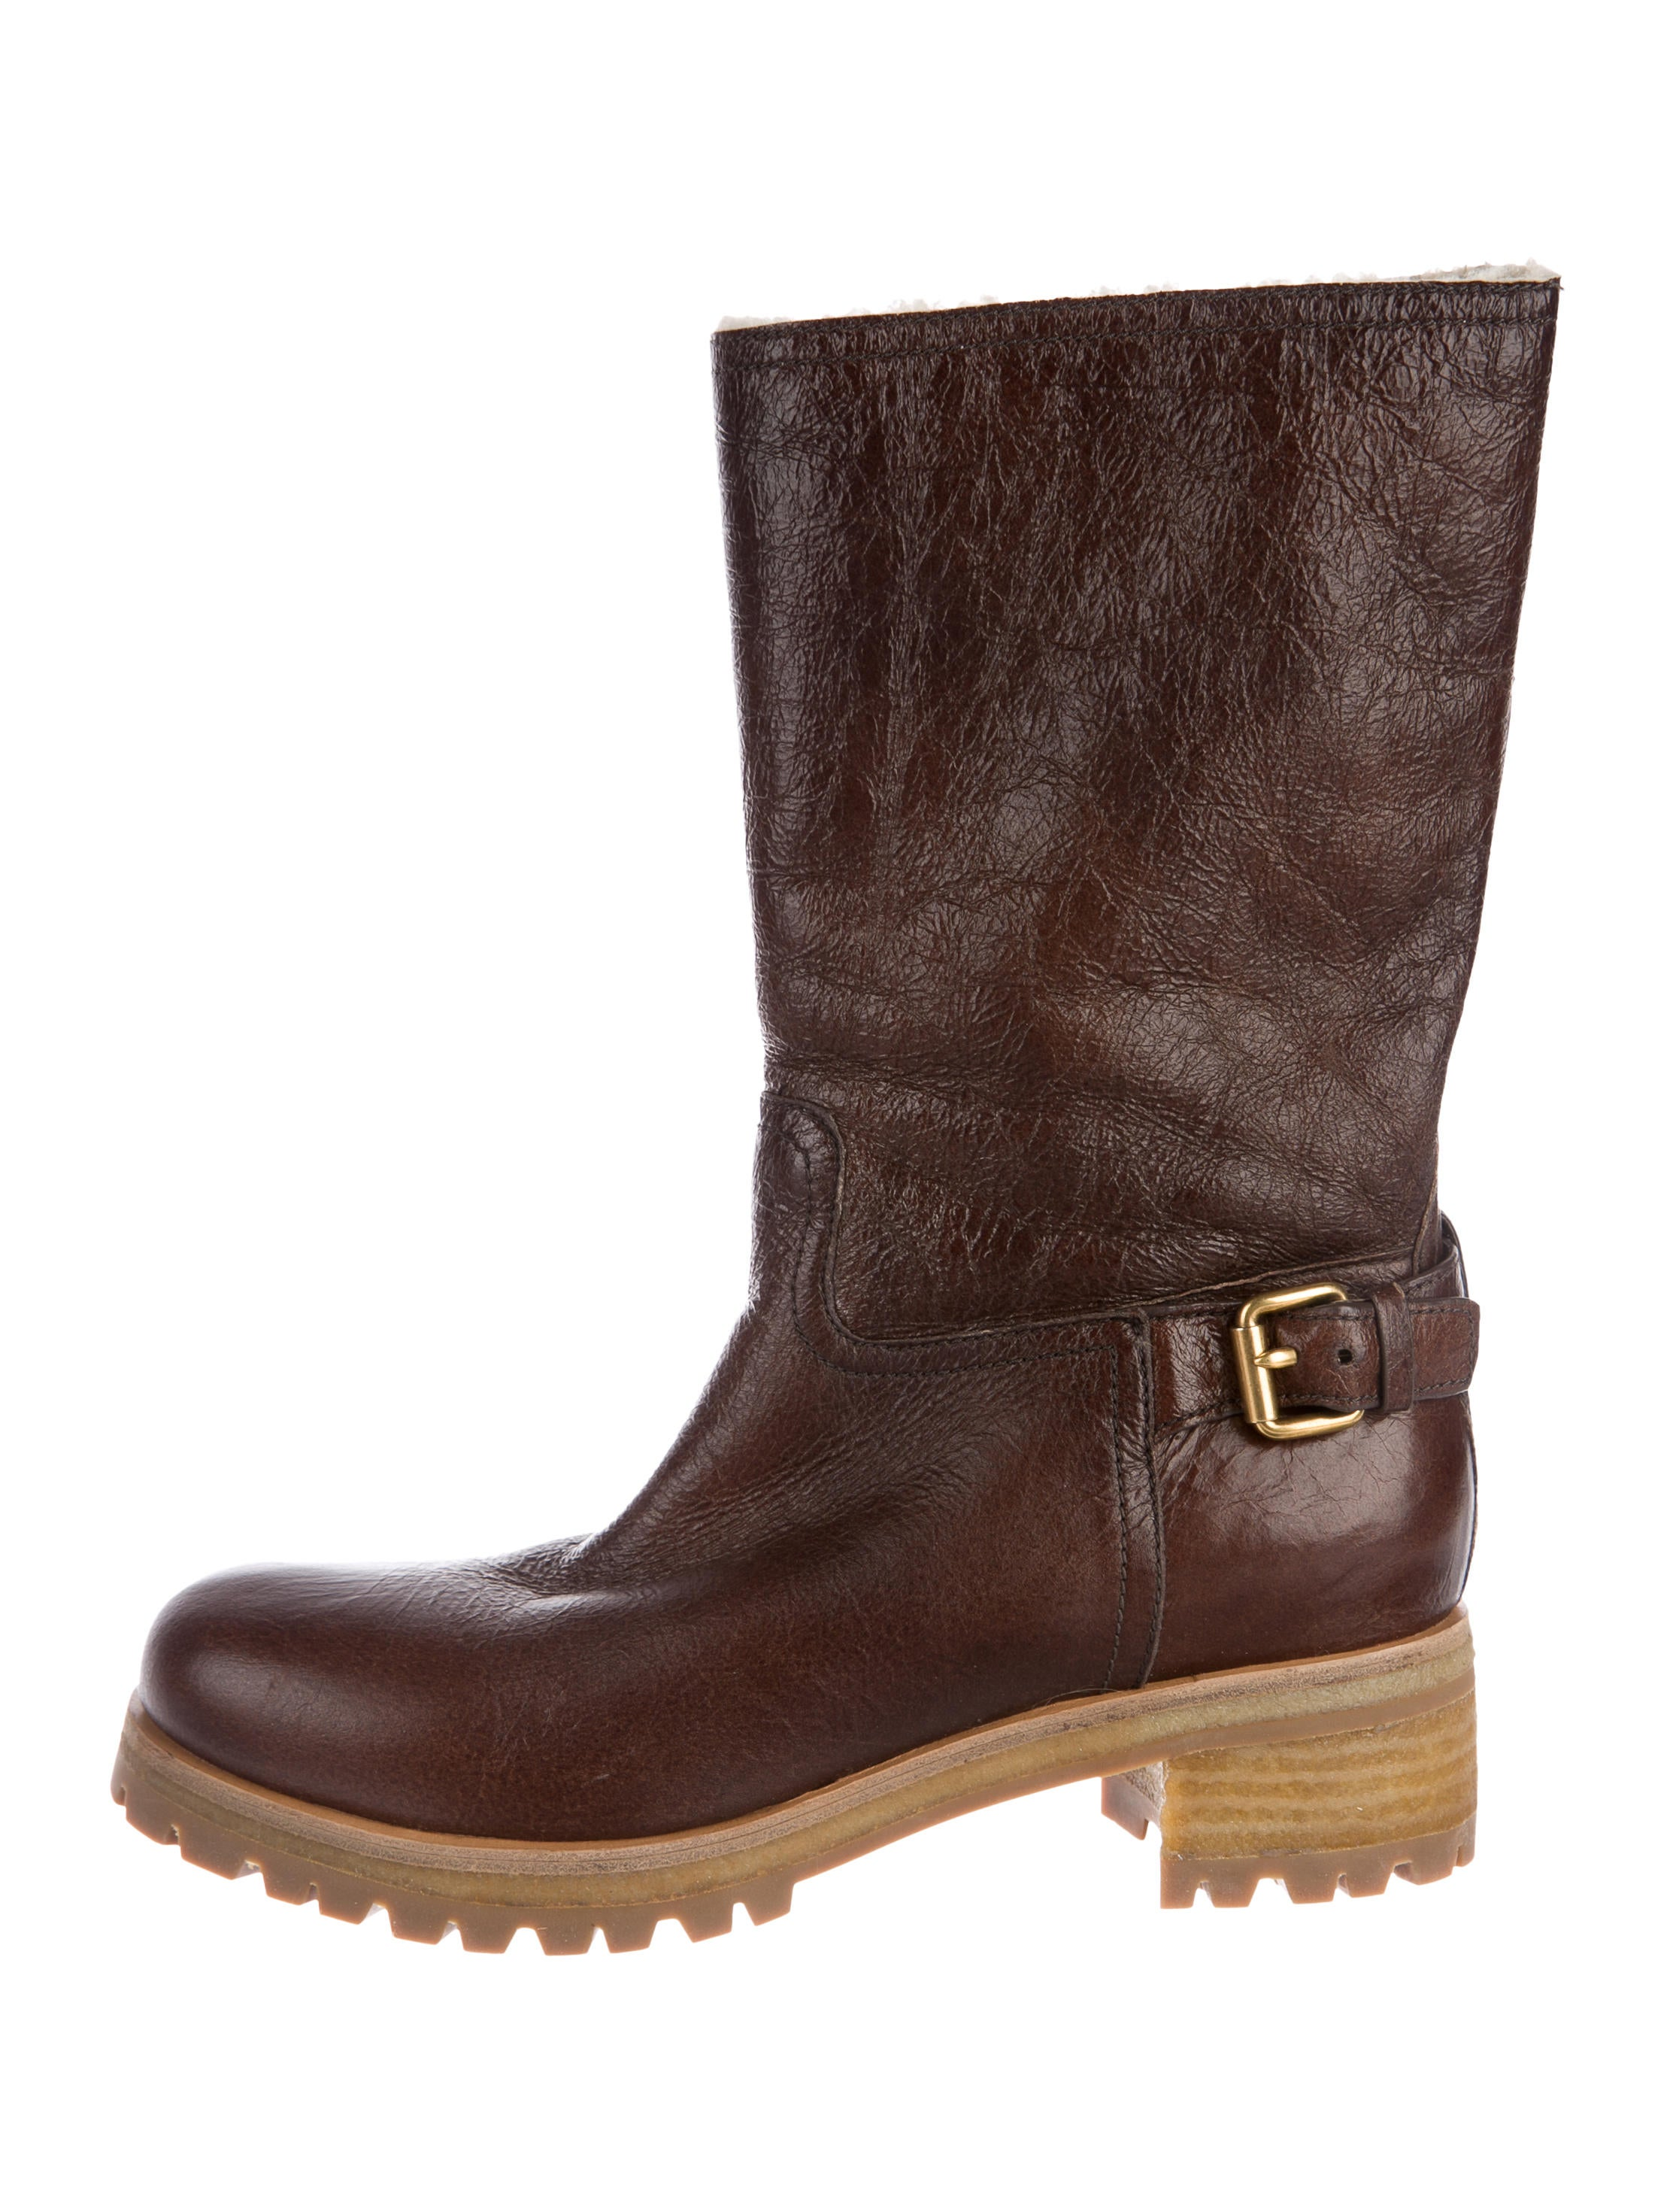 clearance classic Prada Sport Leather Mid-Calf Boots free shipping low price fee shipping qSMHK